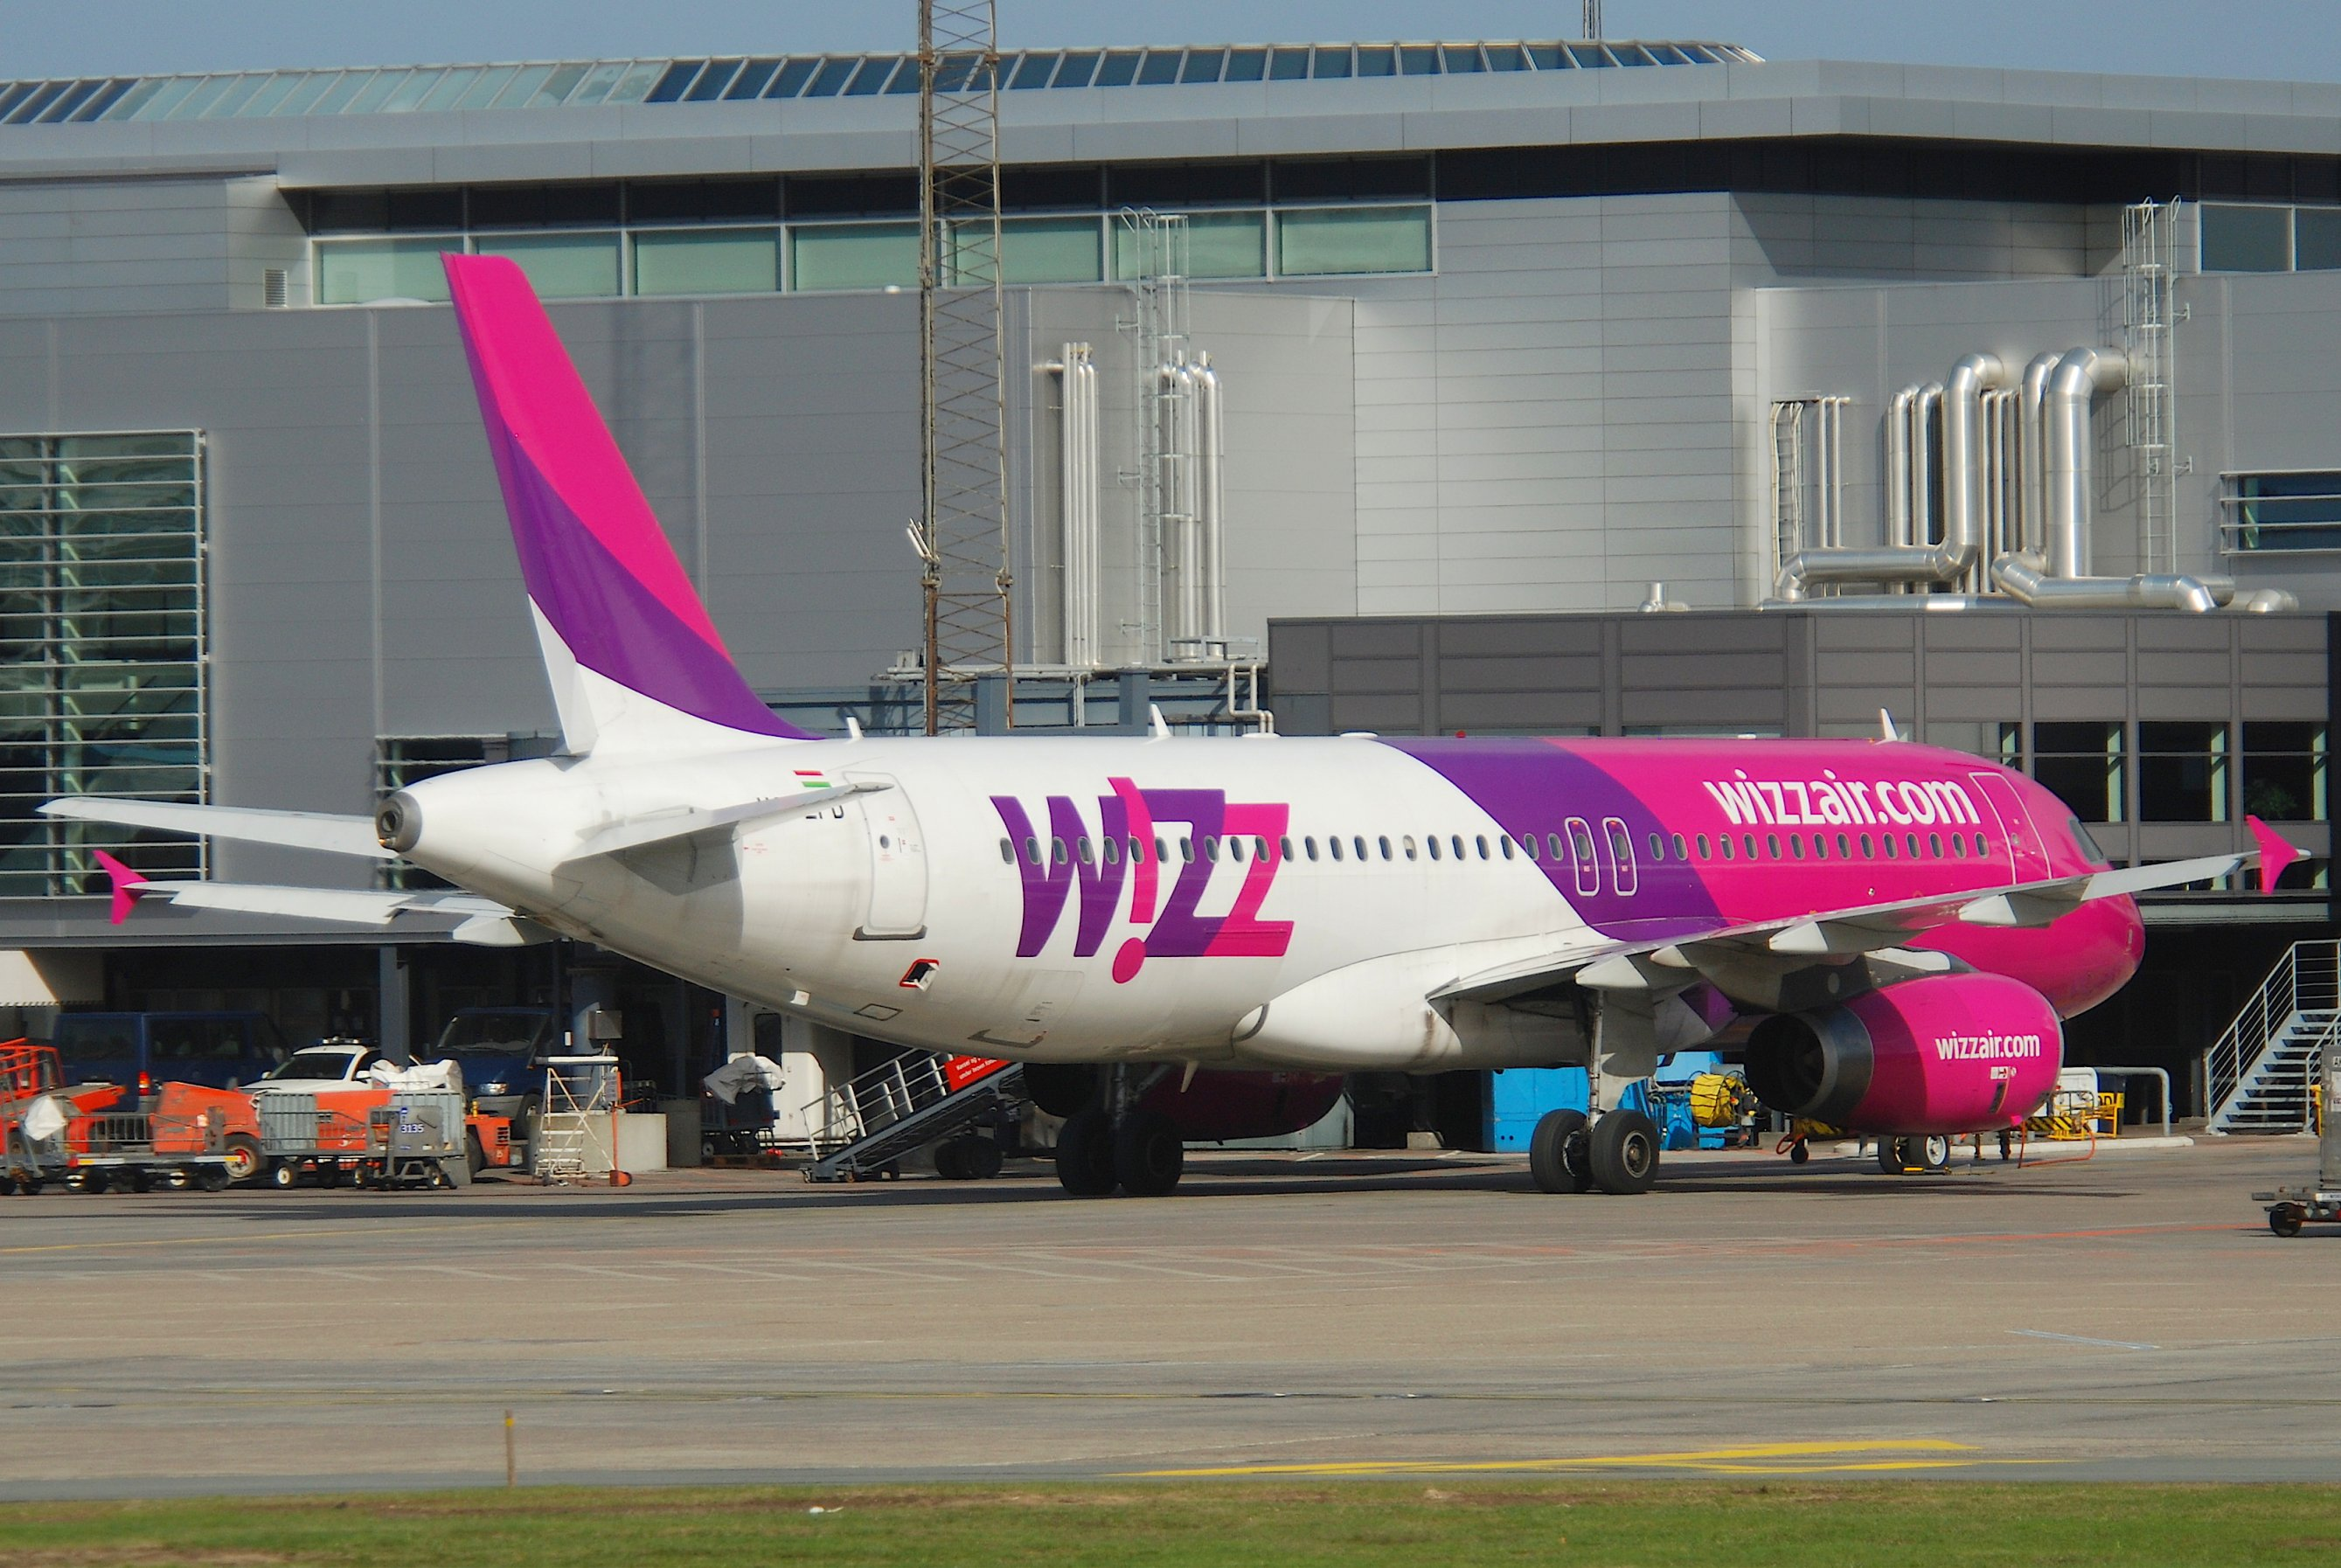 Wizz Air A320-200 i Københavns Lufthavn. (Foto: Aero Icarus / Creative Commons License, Wikimedia)